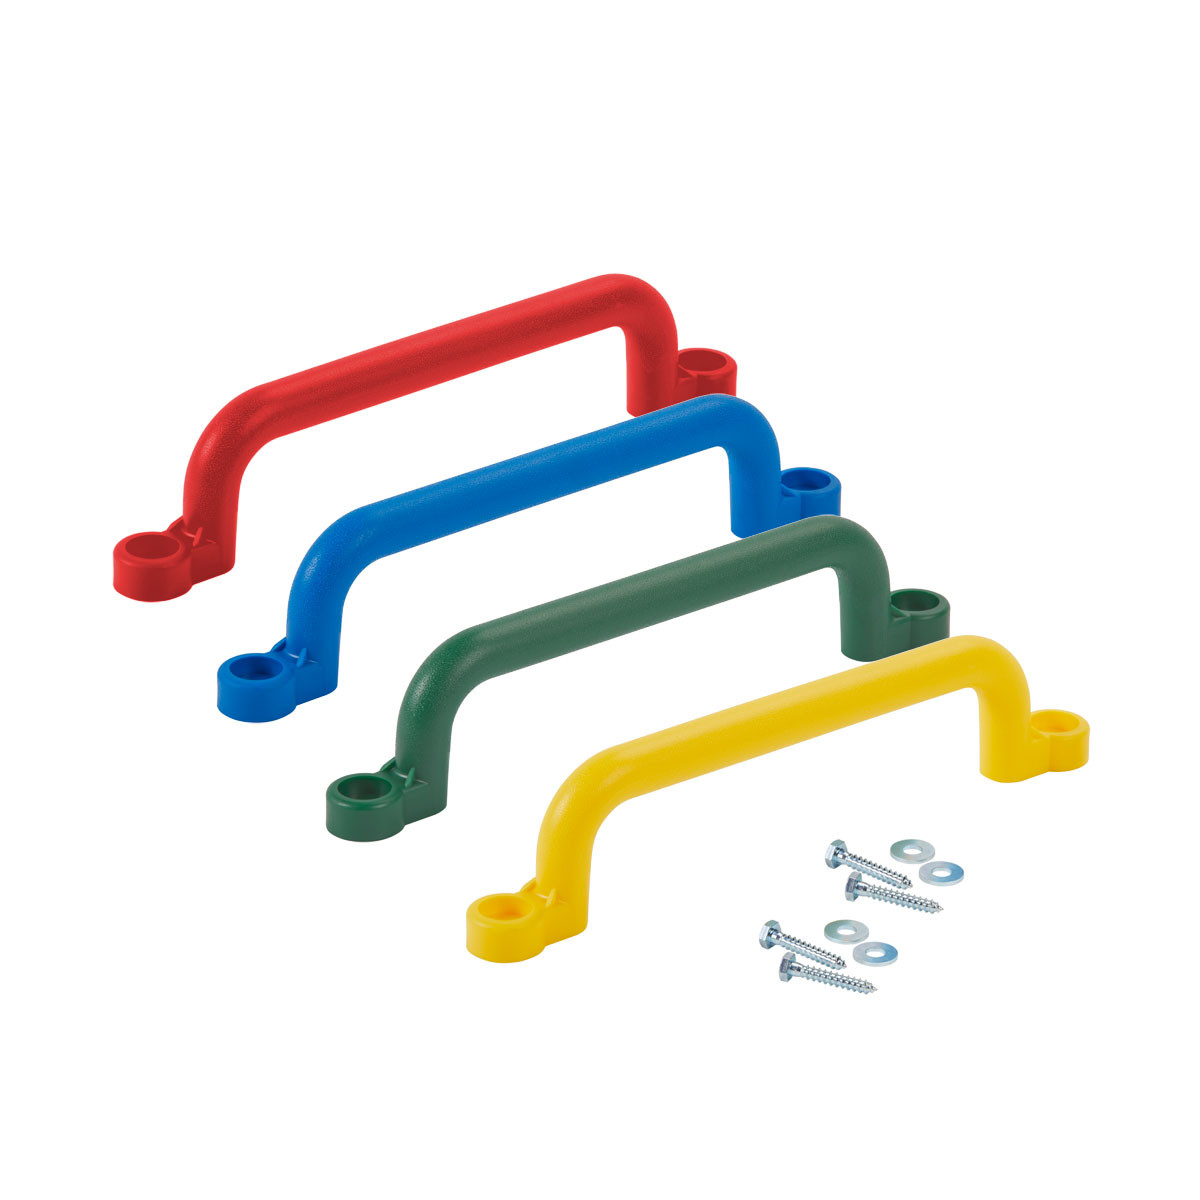 Poly Handle (Pair) - All Colors